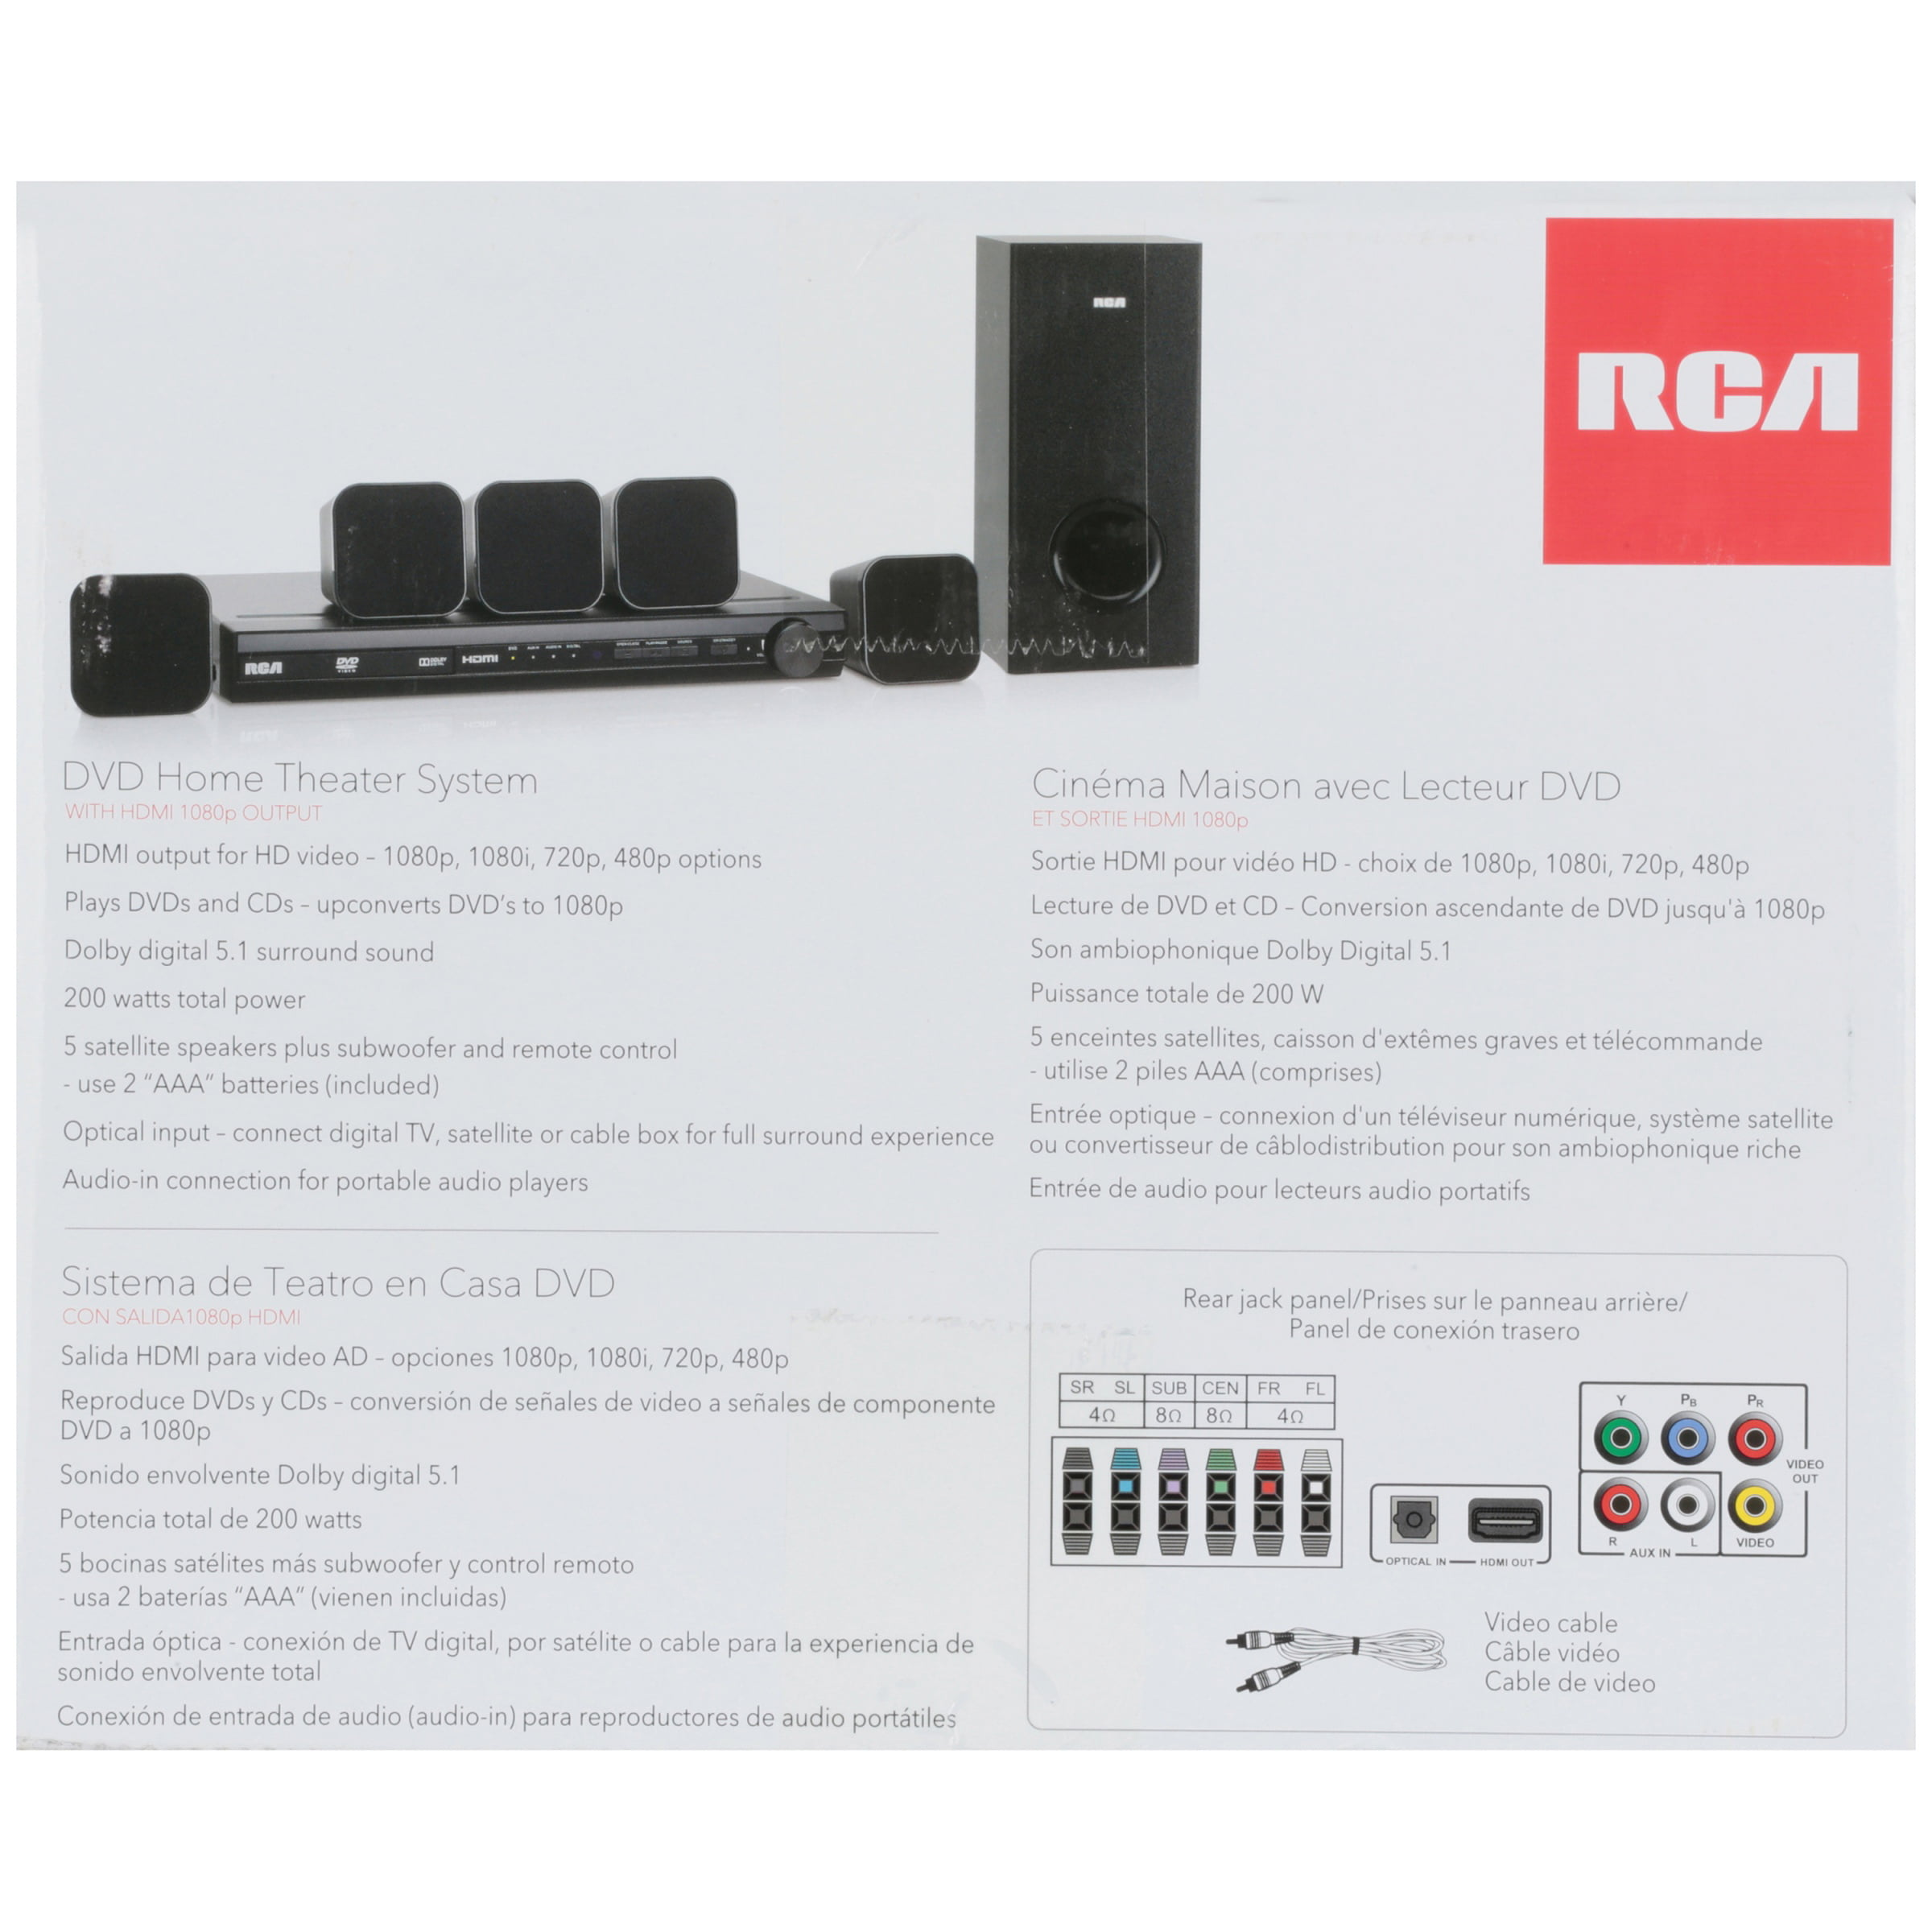 rca 200w dvd home theatre system manual